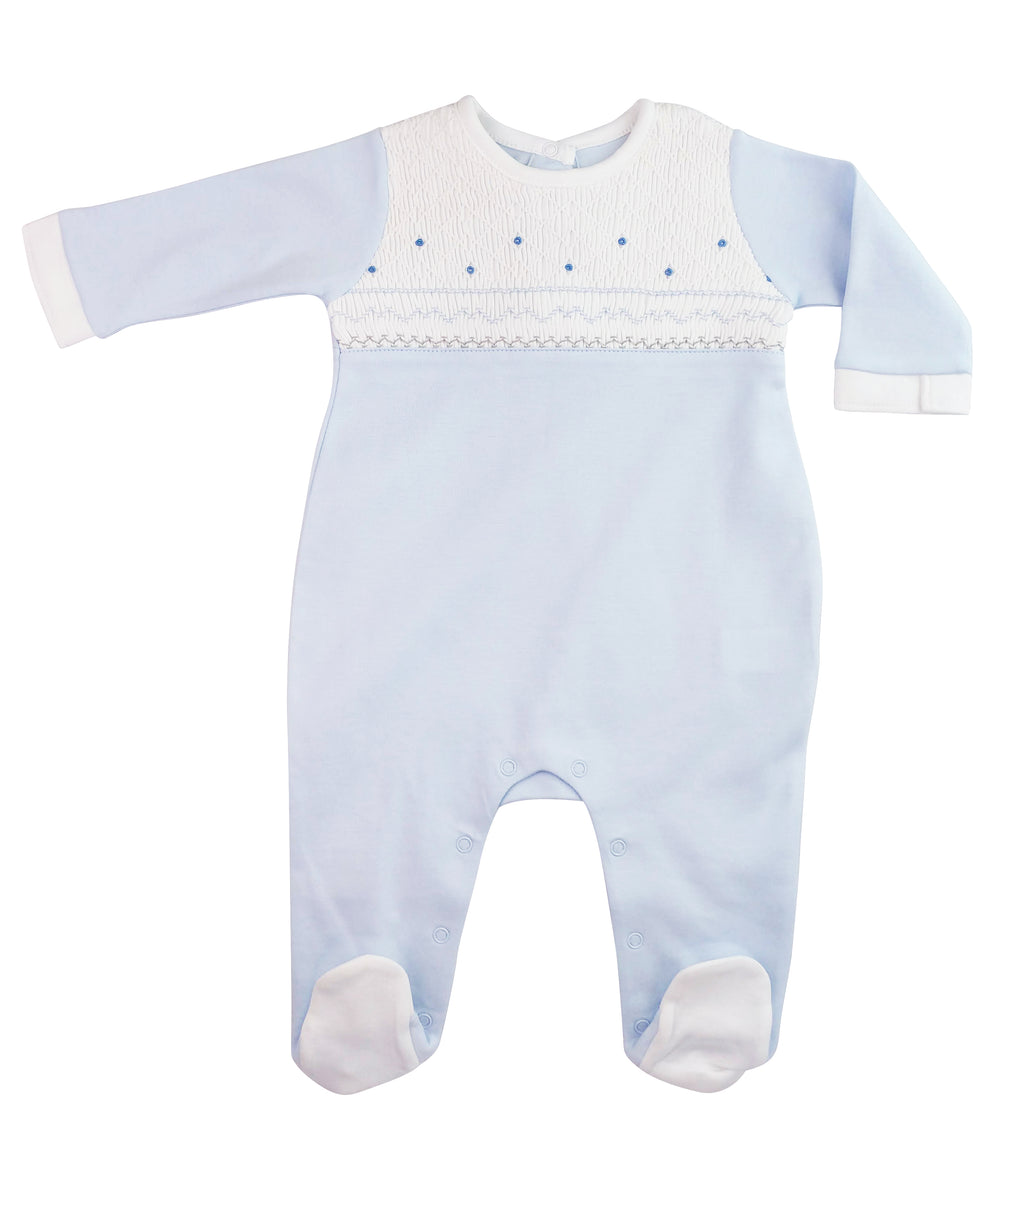 Baby Boy's Blue Smocked Footie - Little Threads Inc. Children's Clothing